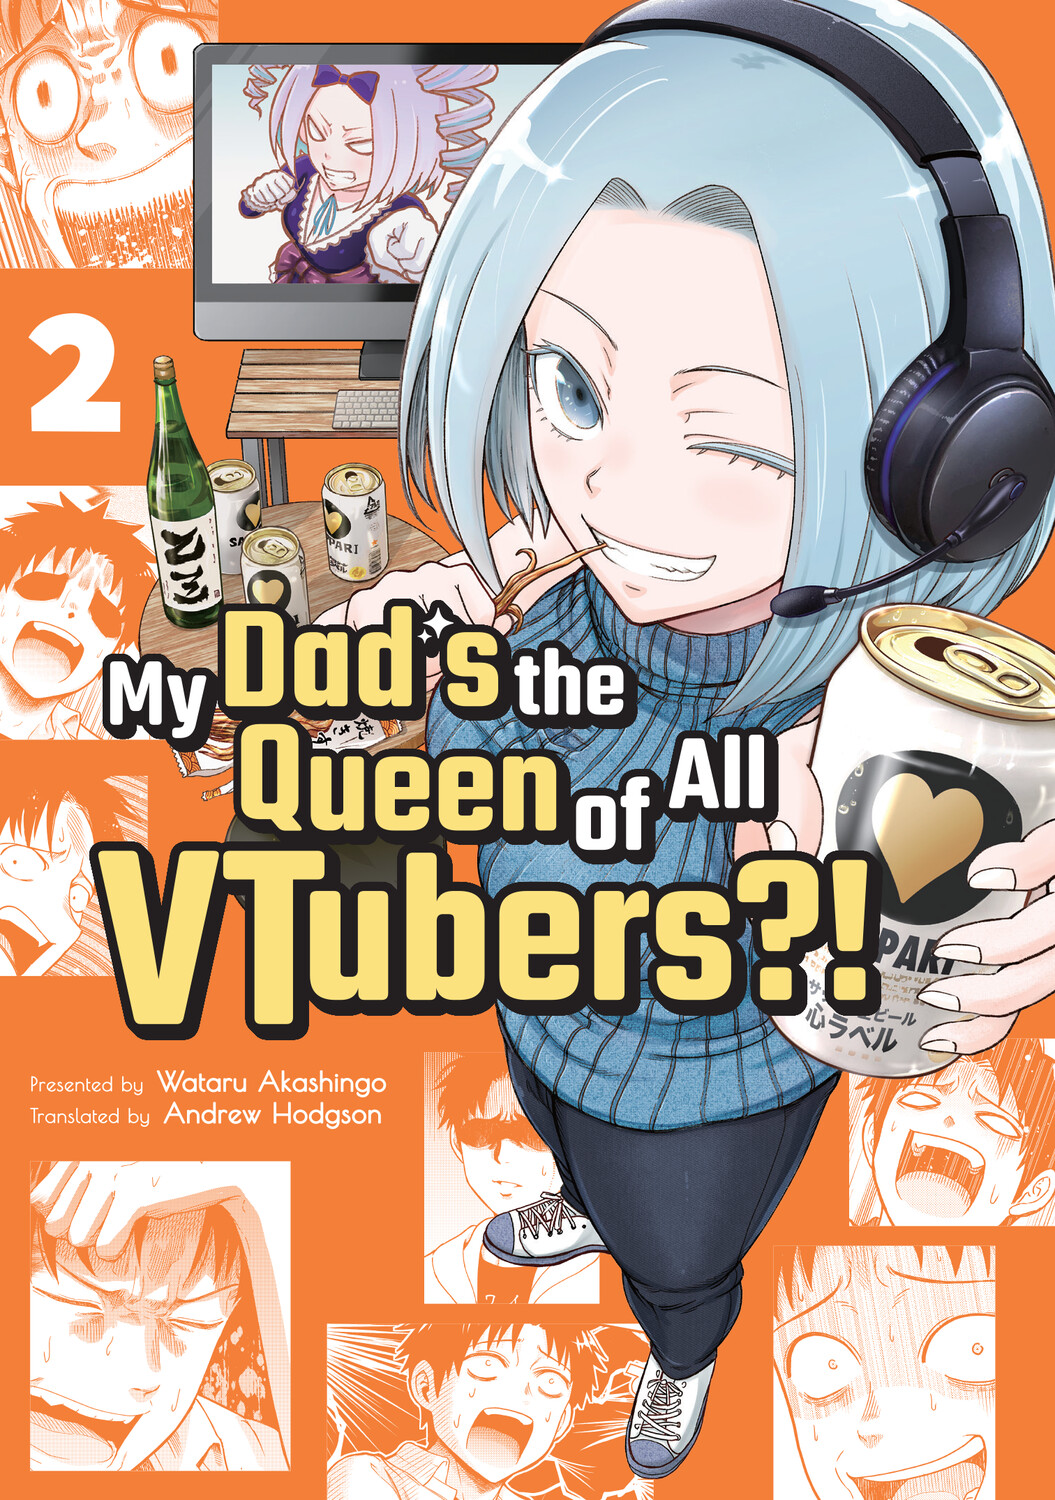 My Dad's the Queen of All VTubers?! Vol. 2 (DIGITAL)